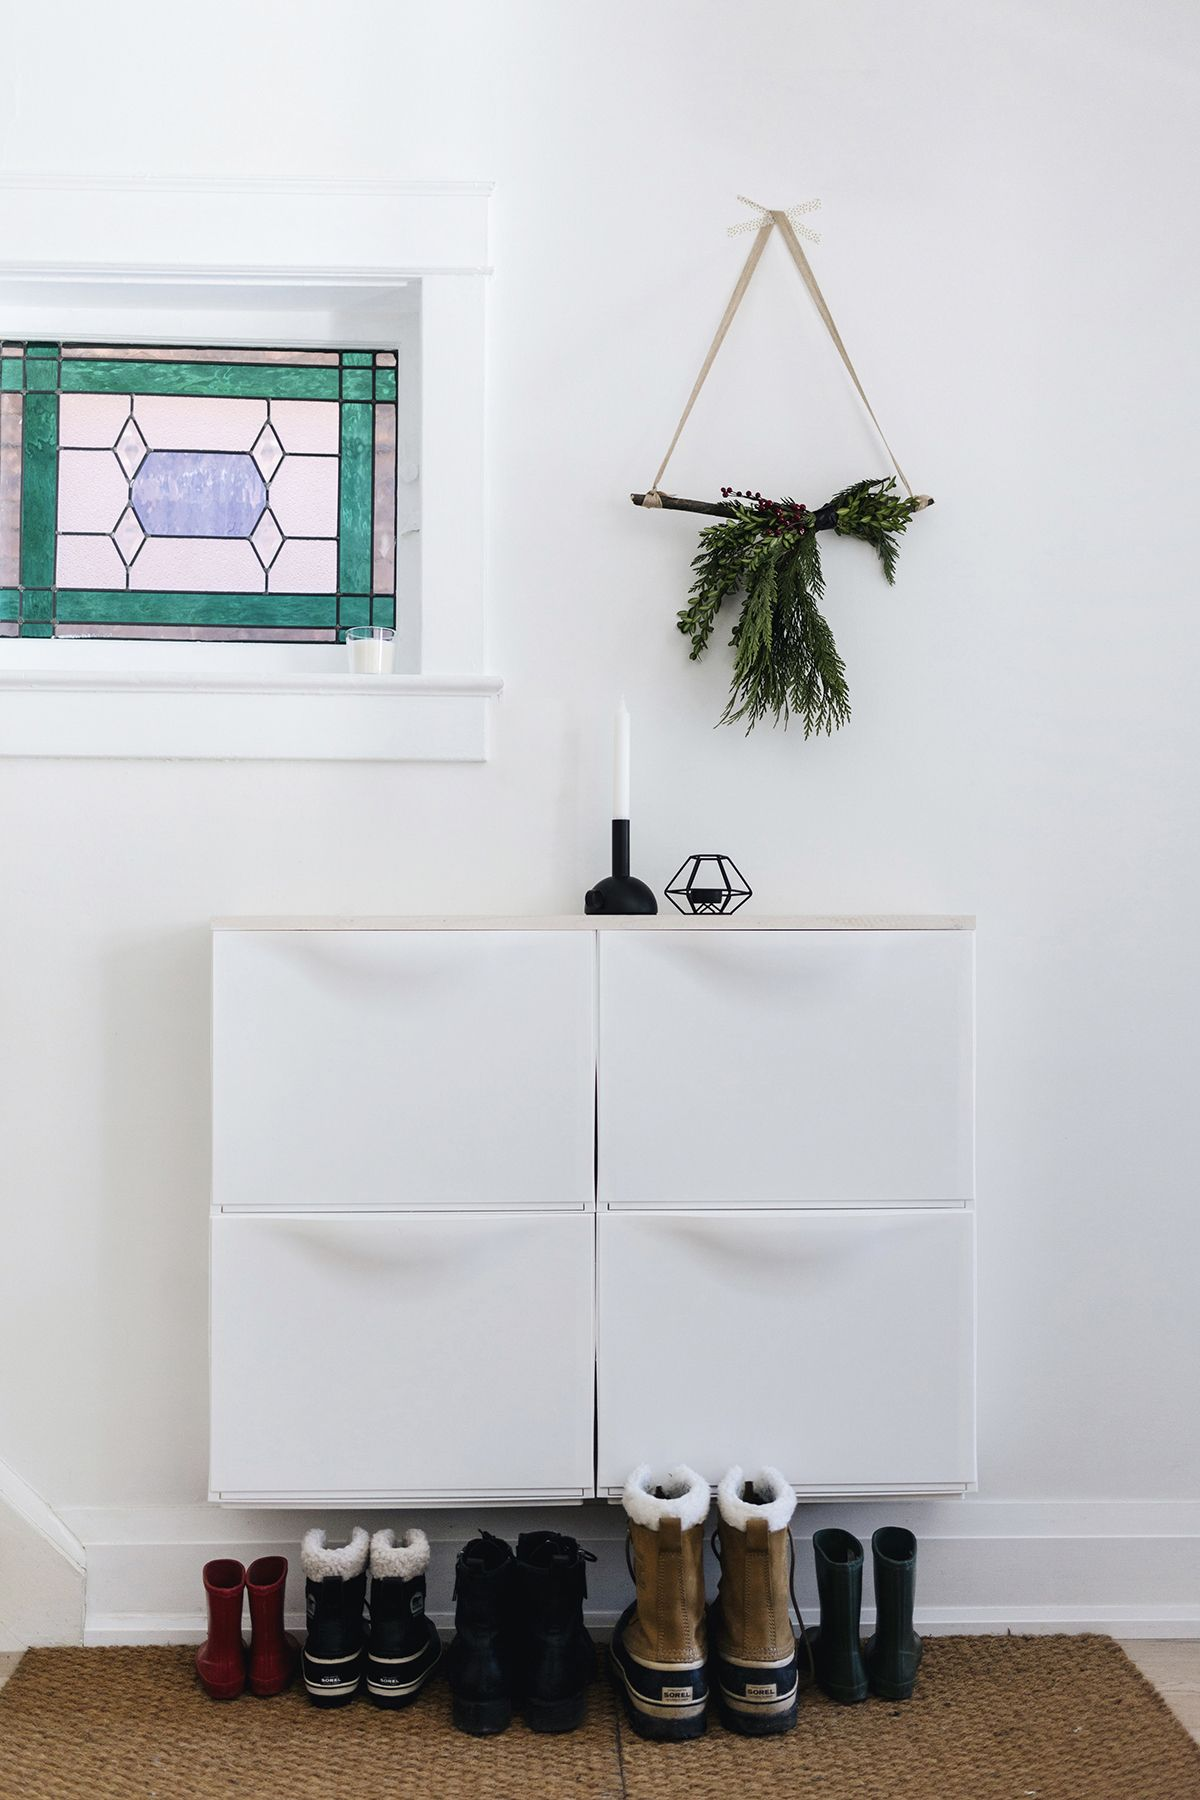 Ikea Trones Bins Shoe Cabinet With Christmas Wall Hanging